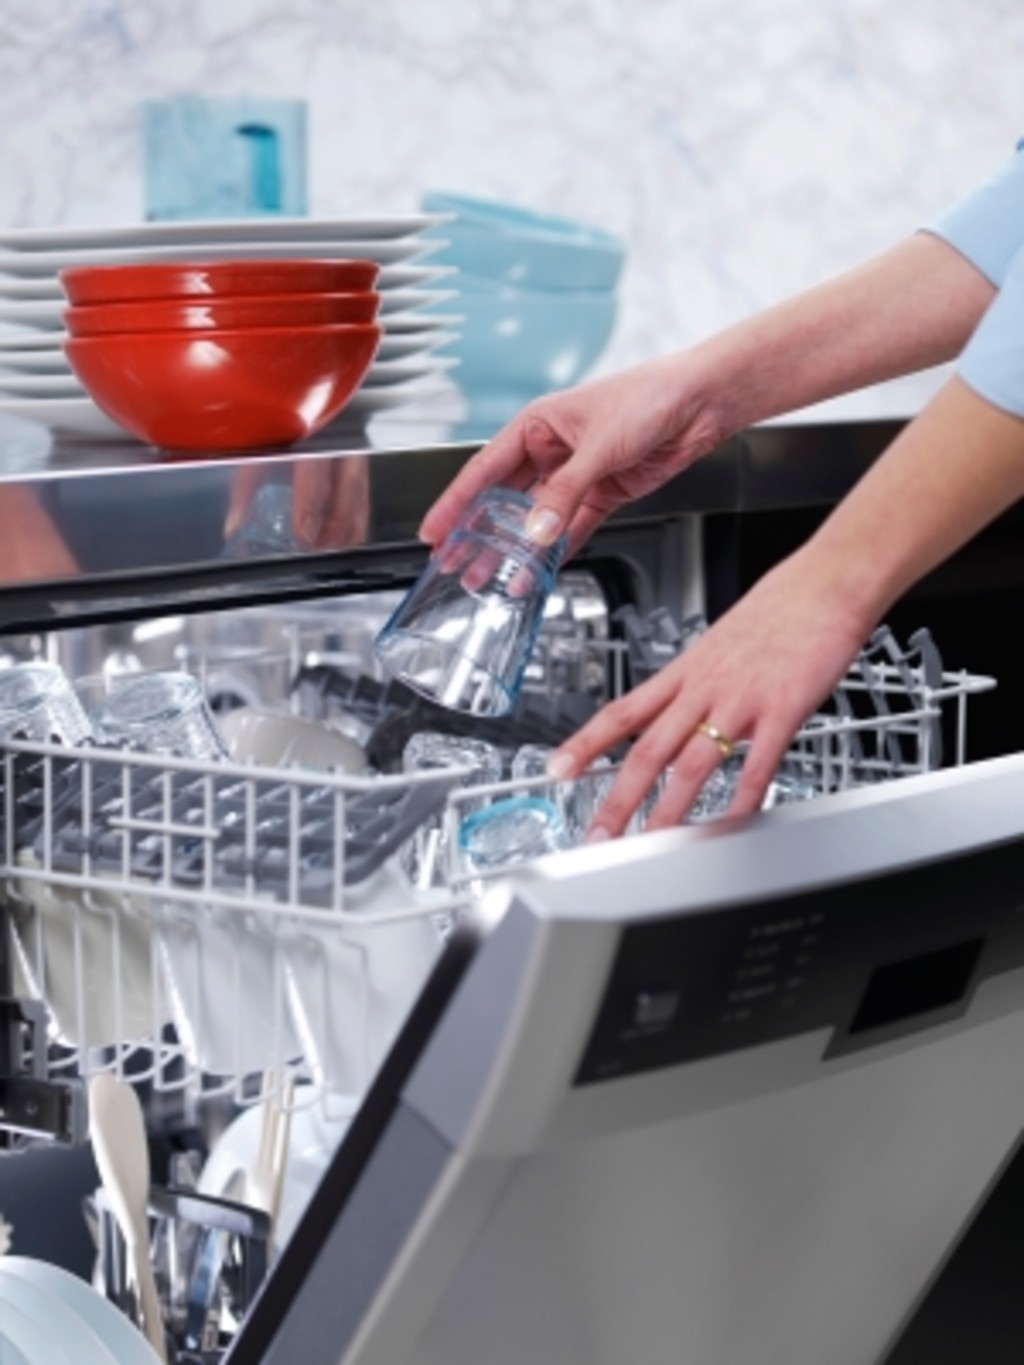 Northeast Appliance Service - Dishwasher